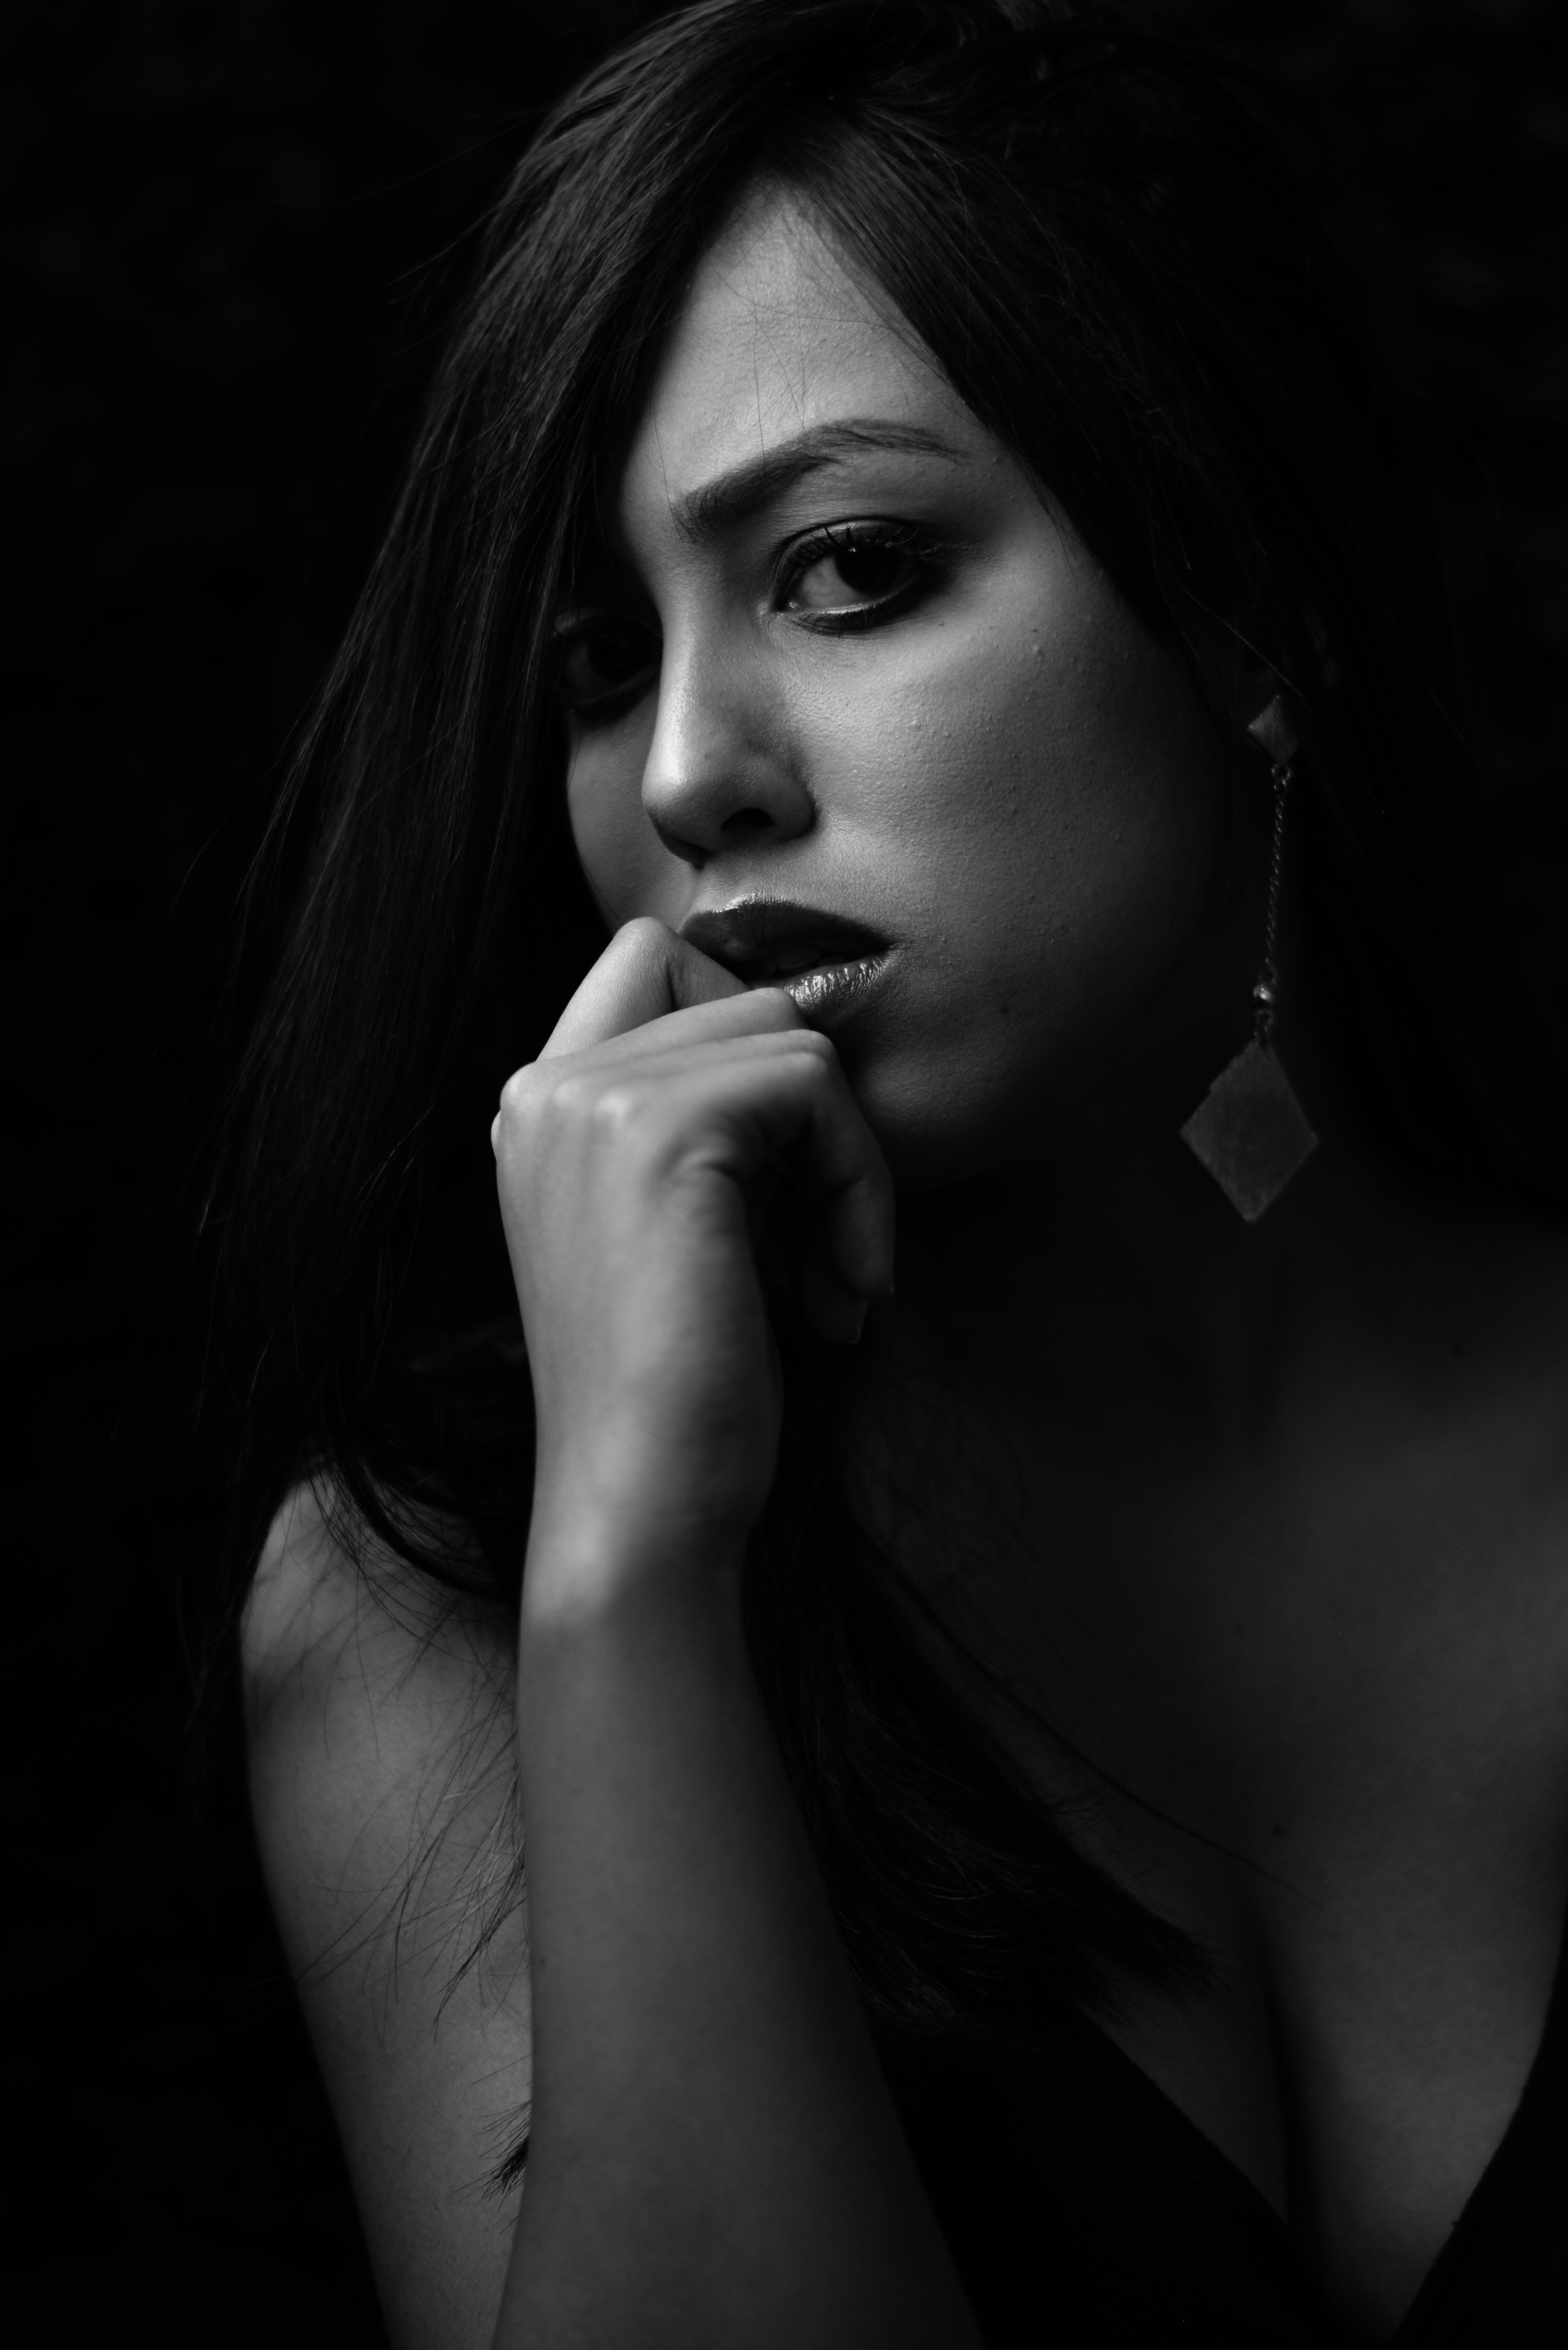 Grayscale Photo of Woman in Black Plunging Neckline Top